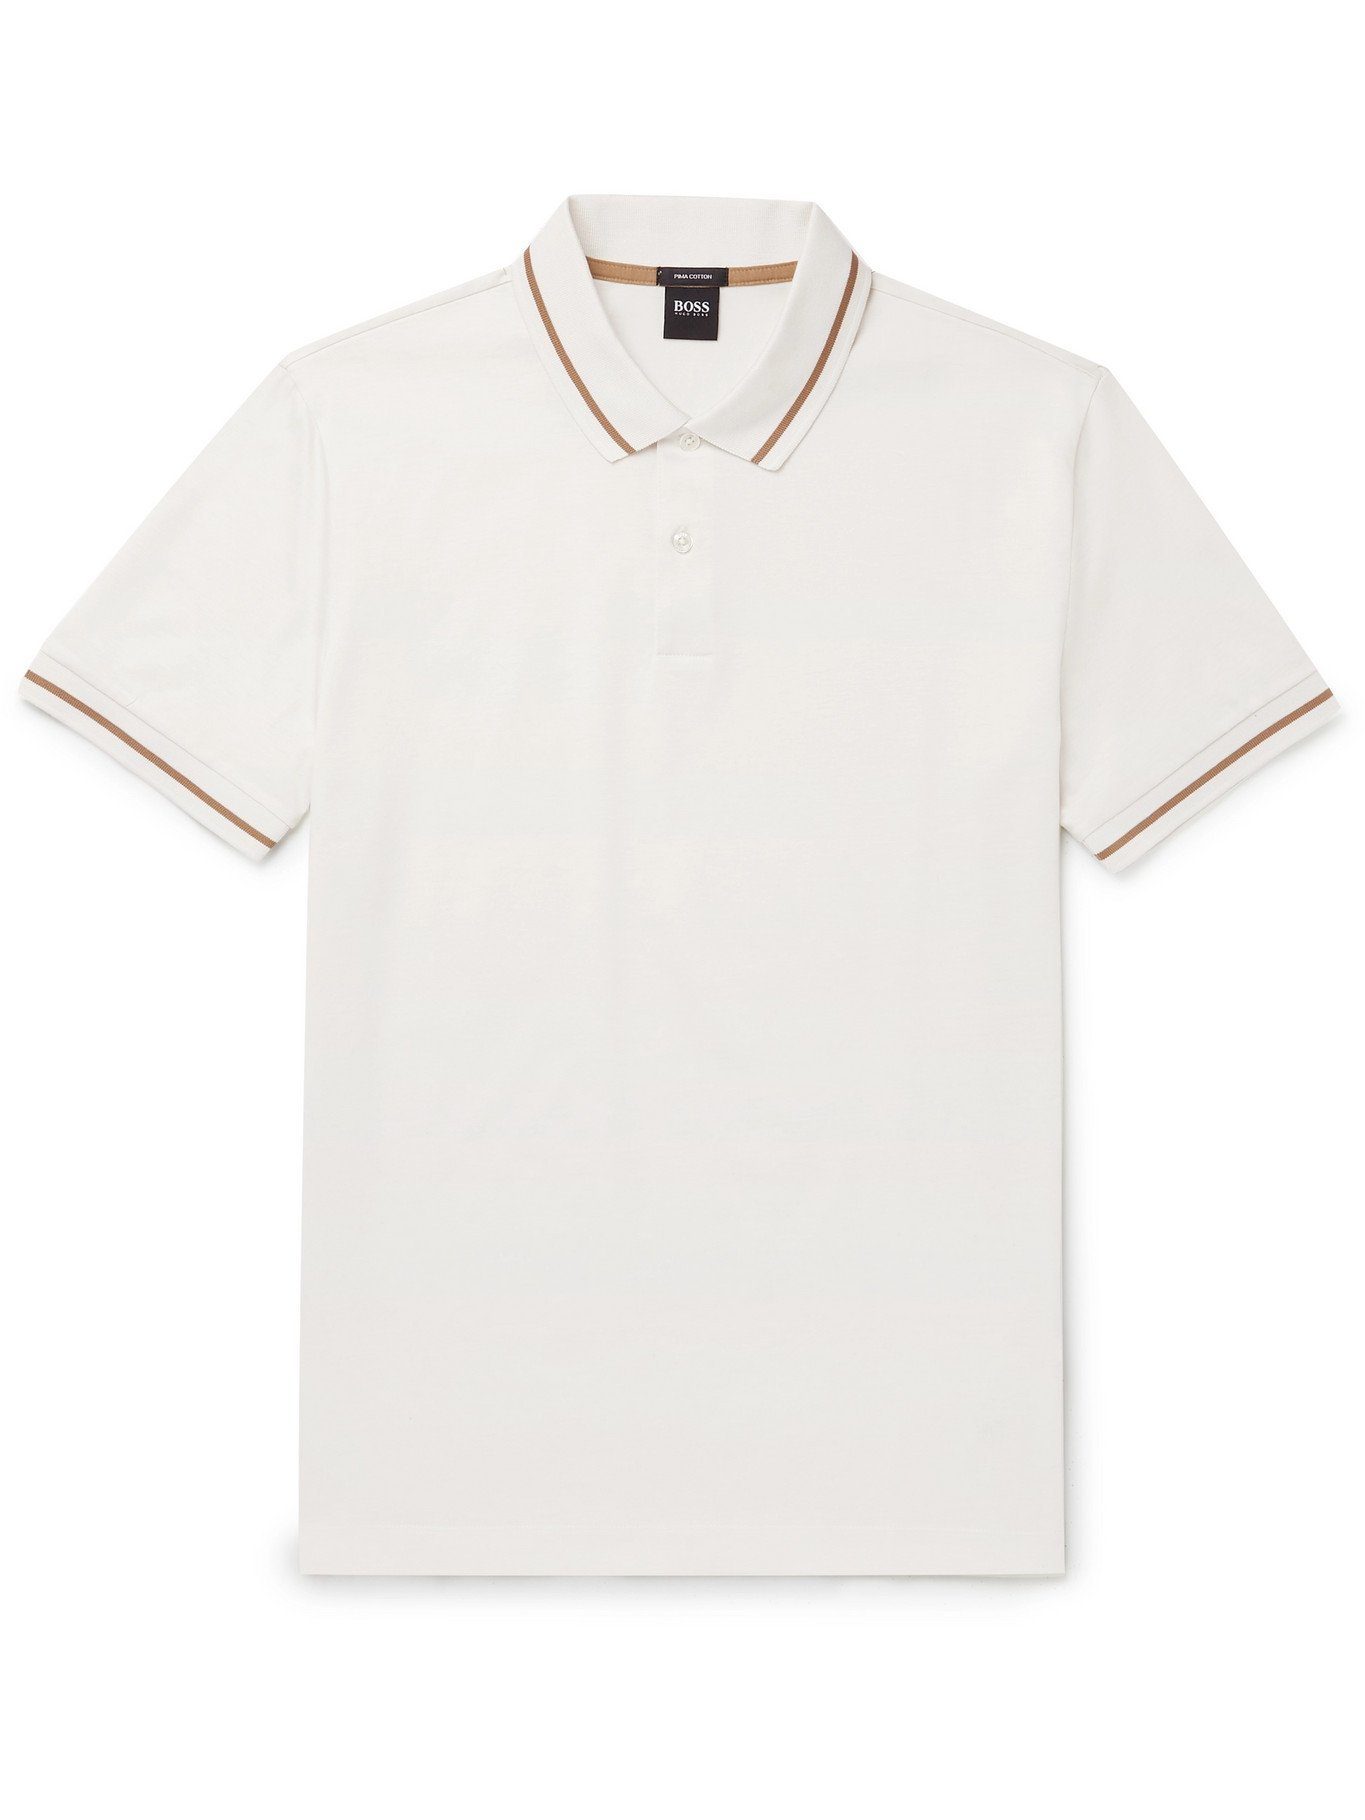 HUGO BOSS - Parlay Contrast-Tipped Cotton-Jersey Polo Shirt - White